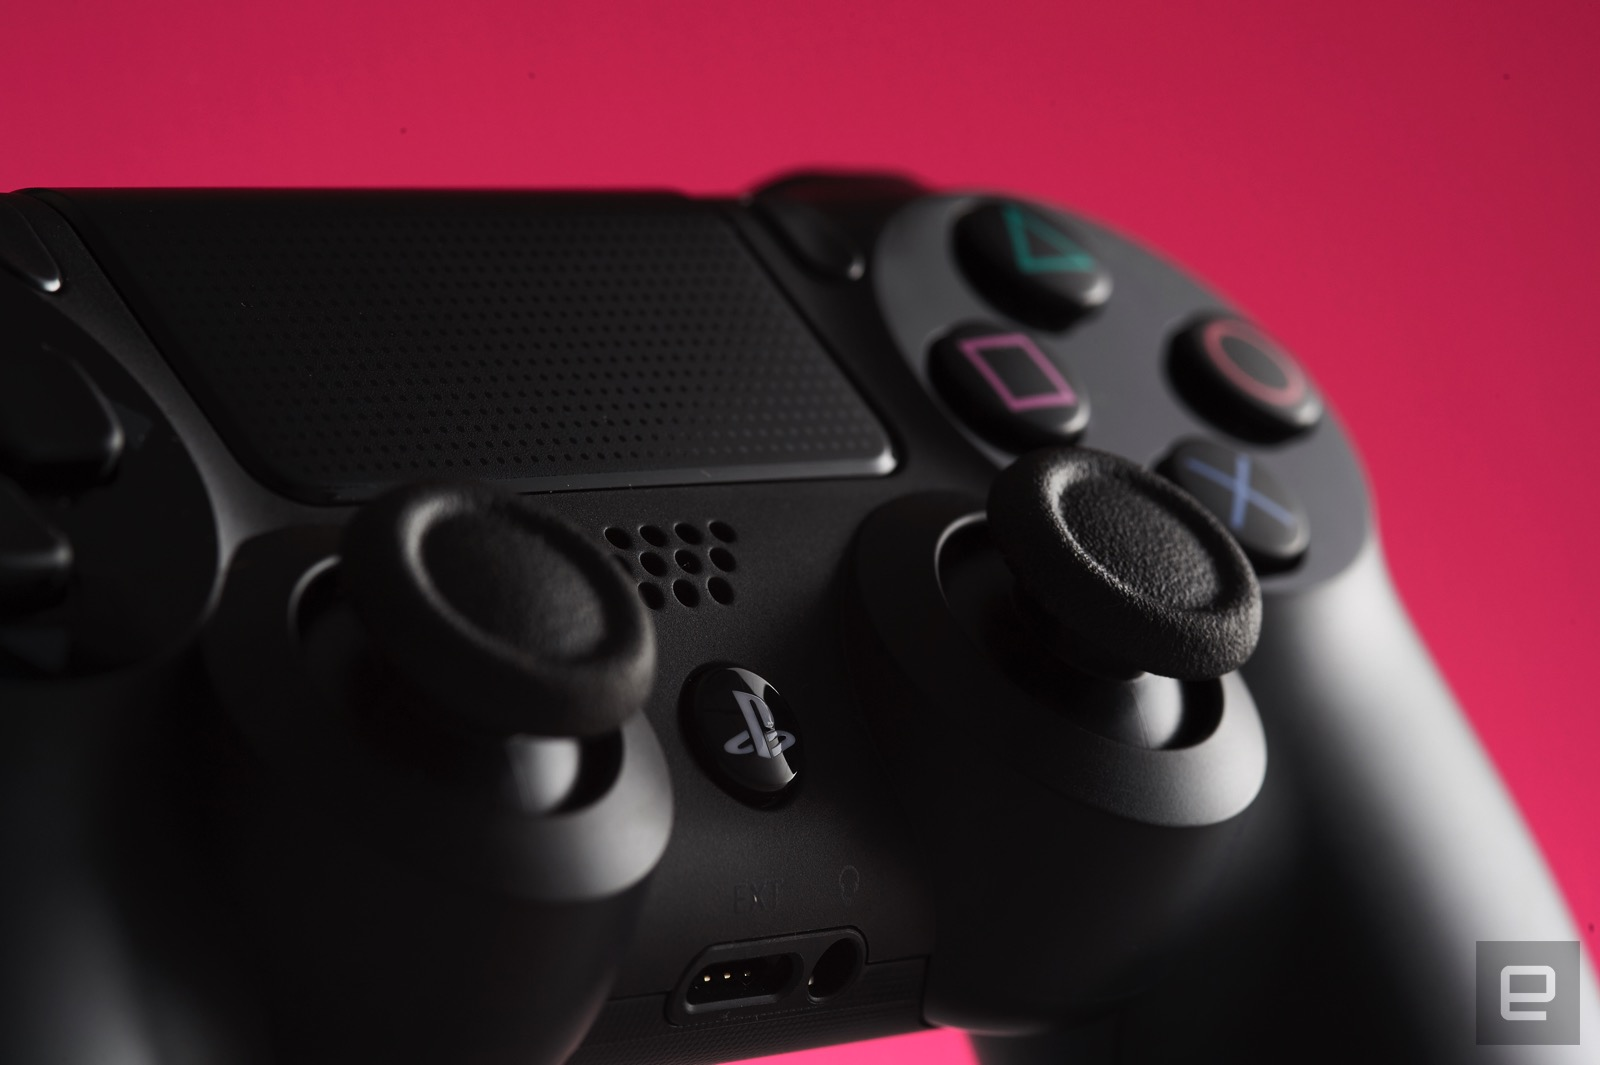 The PlayStation 4 revisited: small improvements for a solid